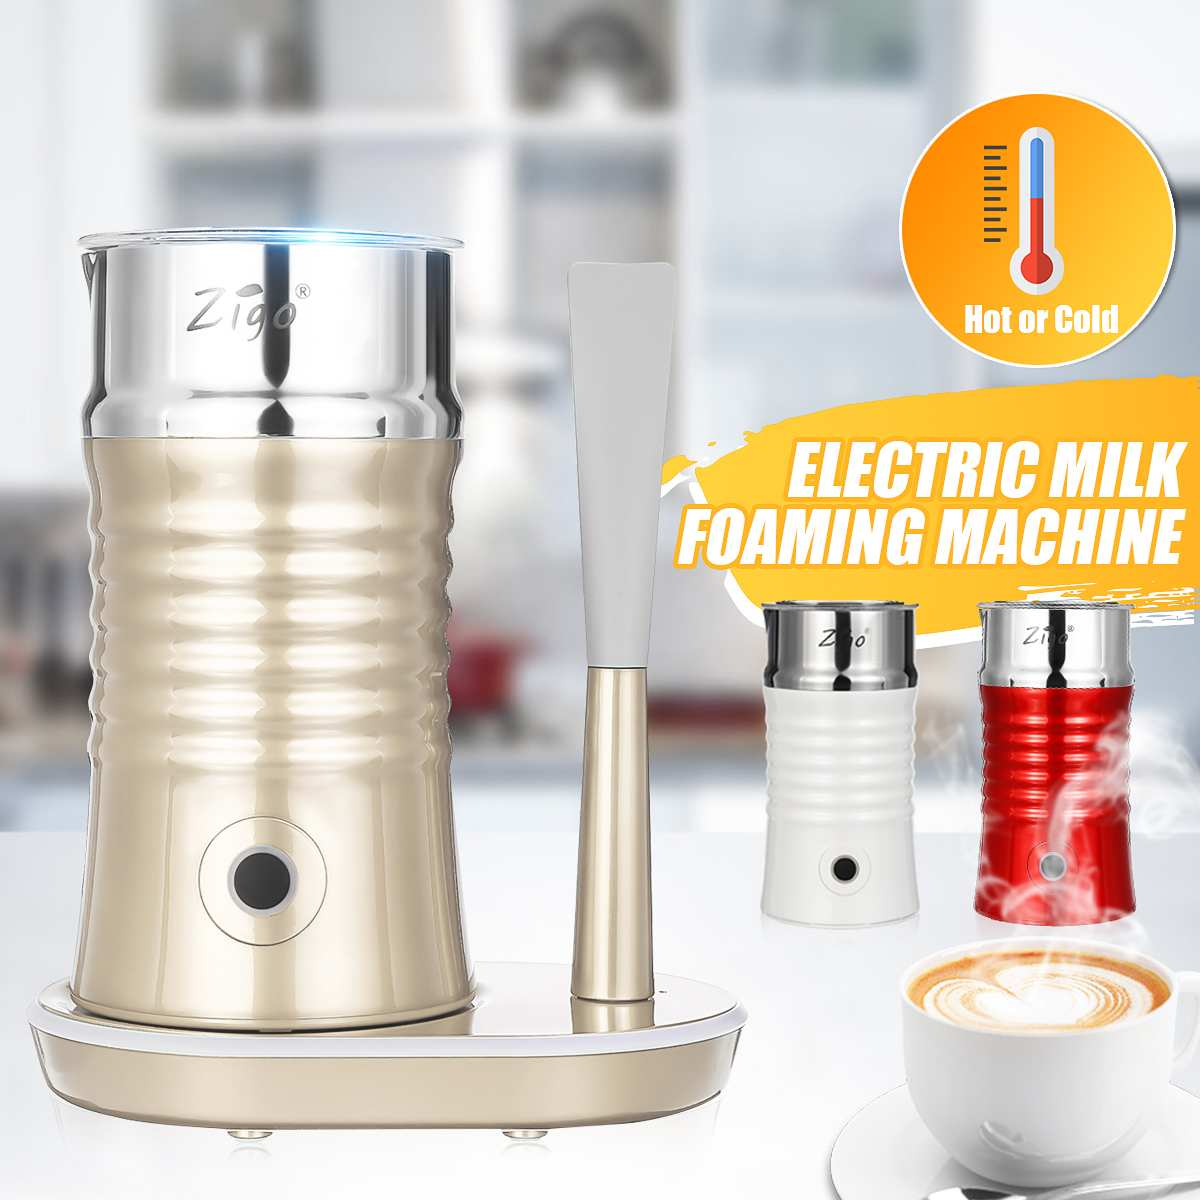 220V Electric Hot / Cold Milk Frother For Coffee Automatic Cappuccino Soft Foamer Electric Coffee Frother Whisk Mixer Stirrer